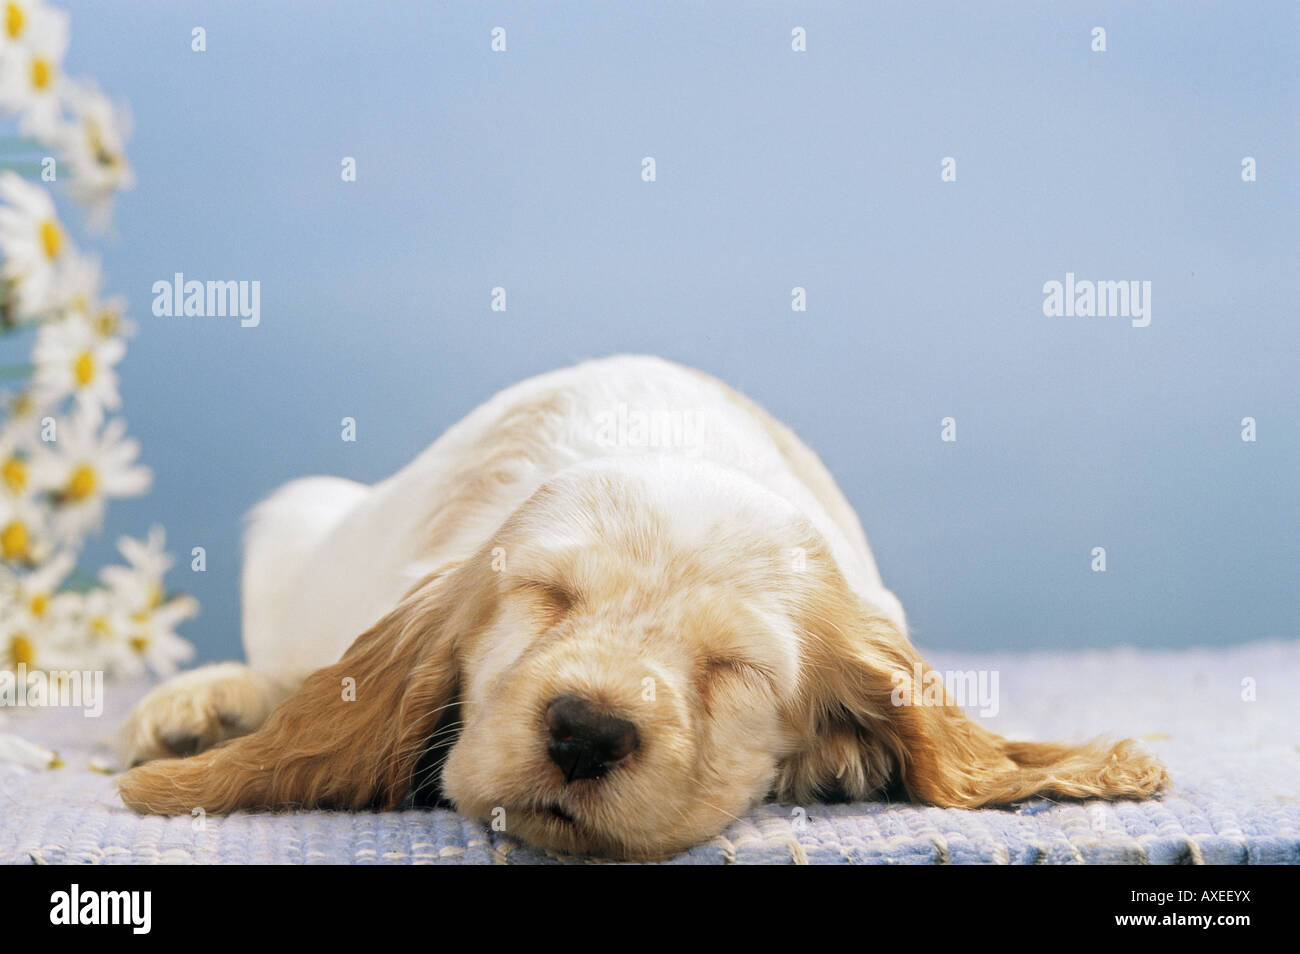 Cocker Spaniel puppy - sleeping Stock Photo